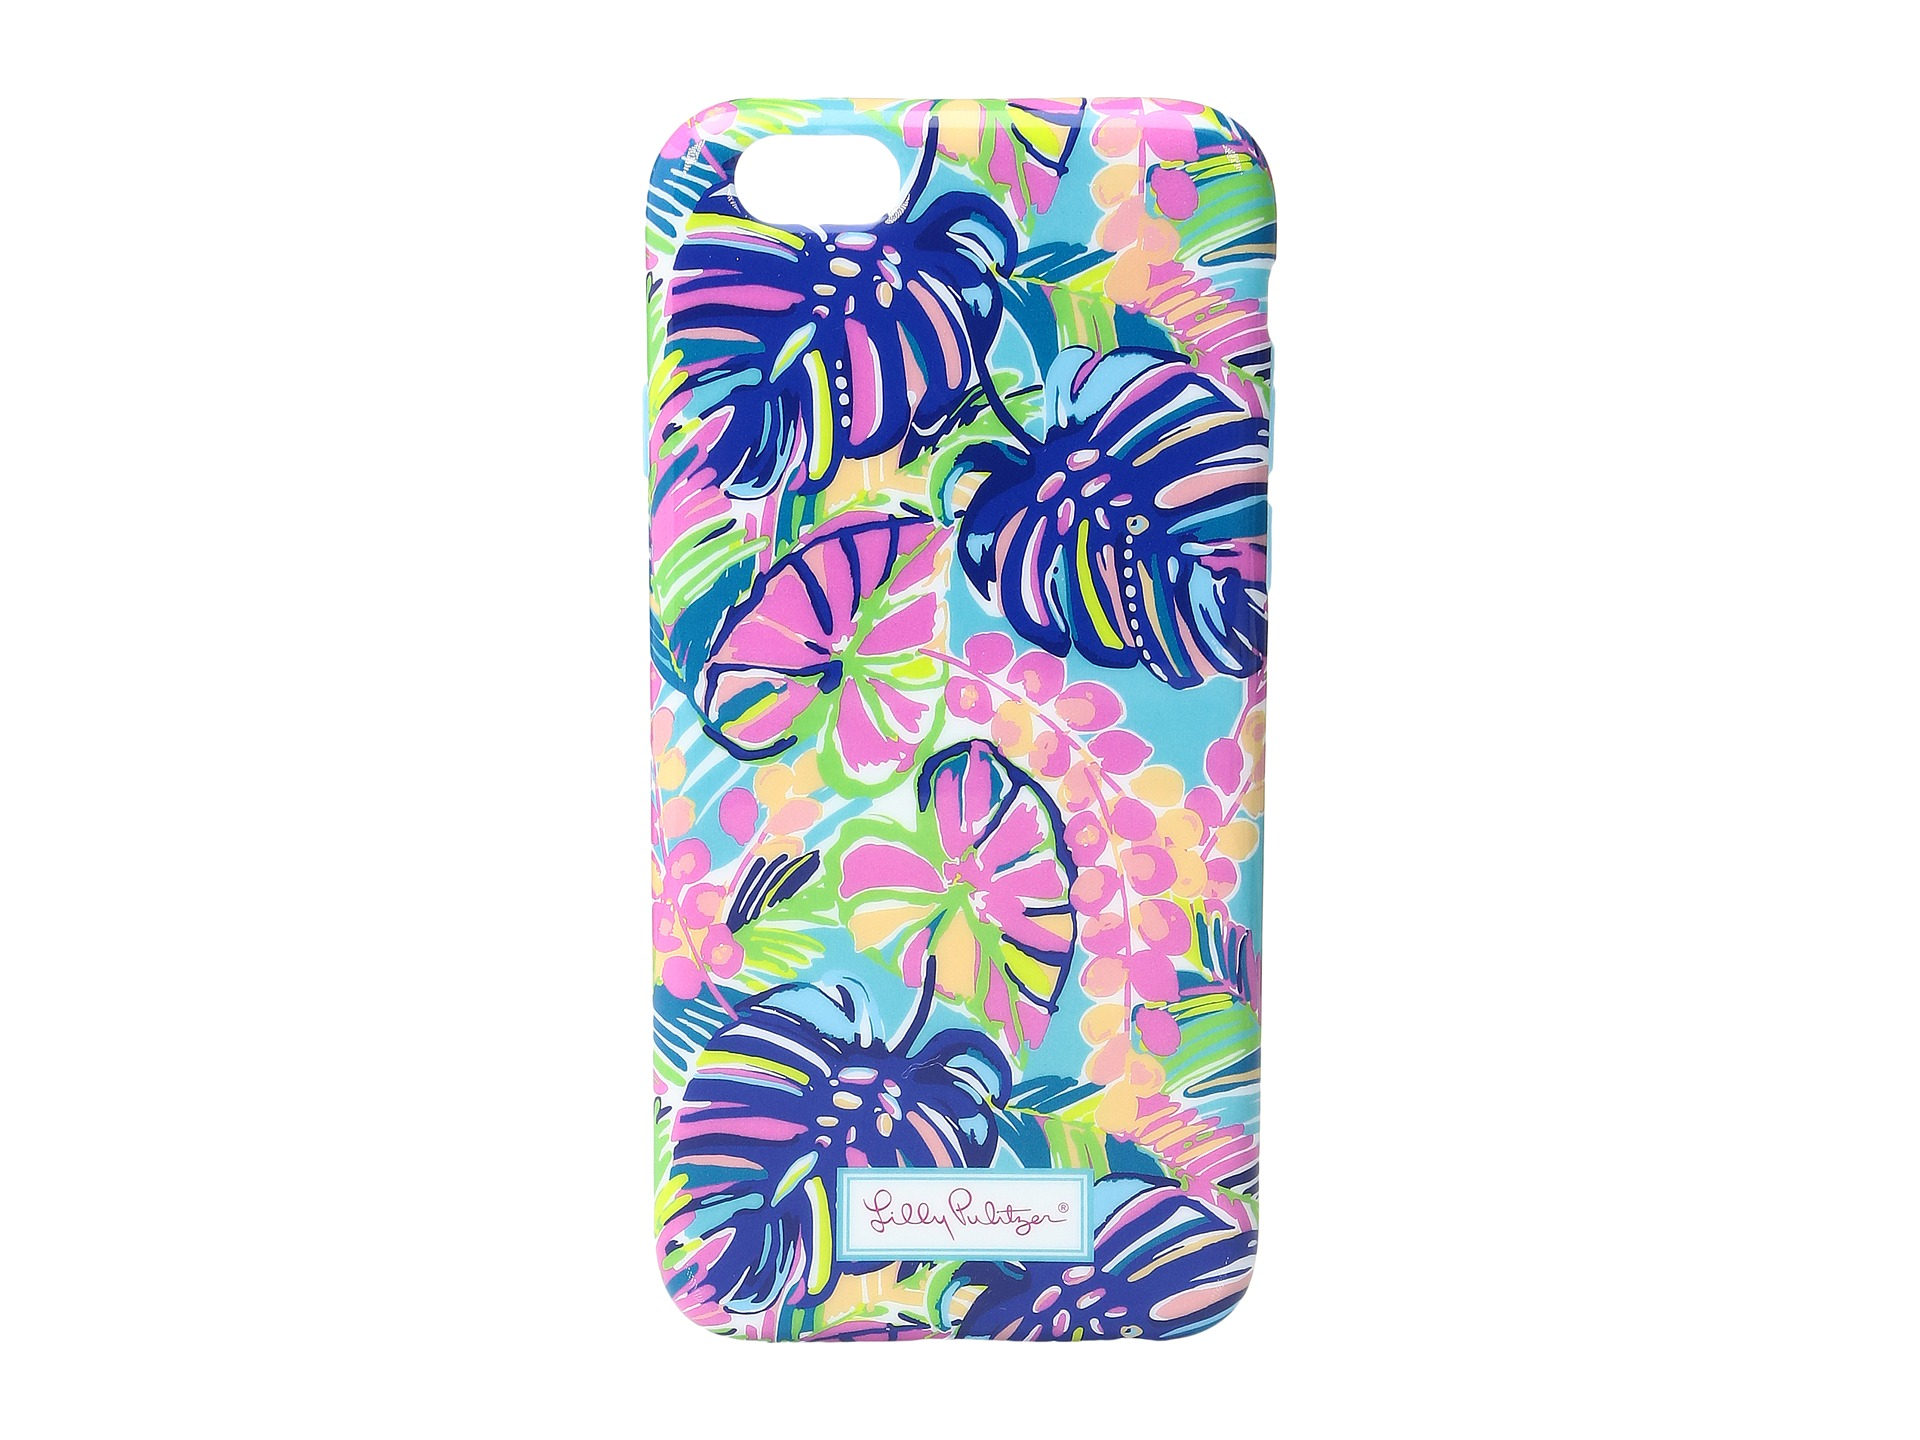 Enchanting Lilly Pulitzer Phone Case for Phone Accessories Ideas: Lilly Pulitzer Phone Case | Lilly Pulitzer Iphone 4s Cases | Lilly Pulitzer Id Wristlet